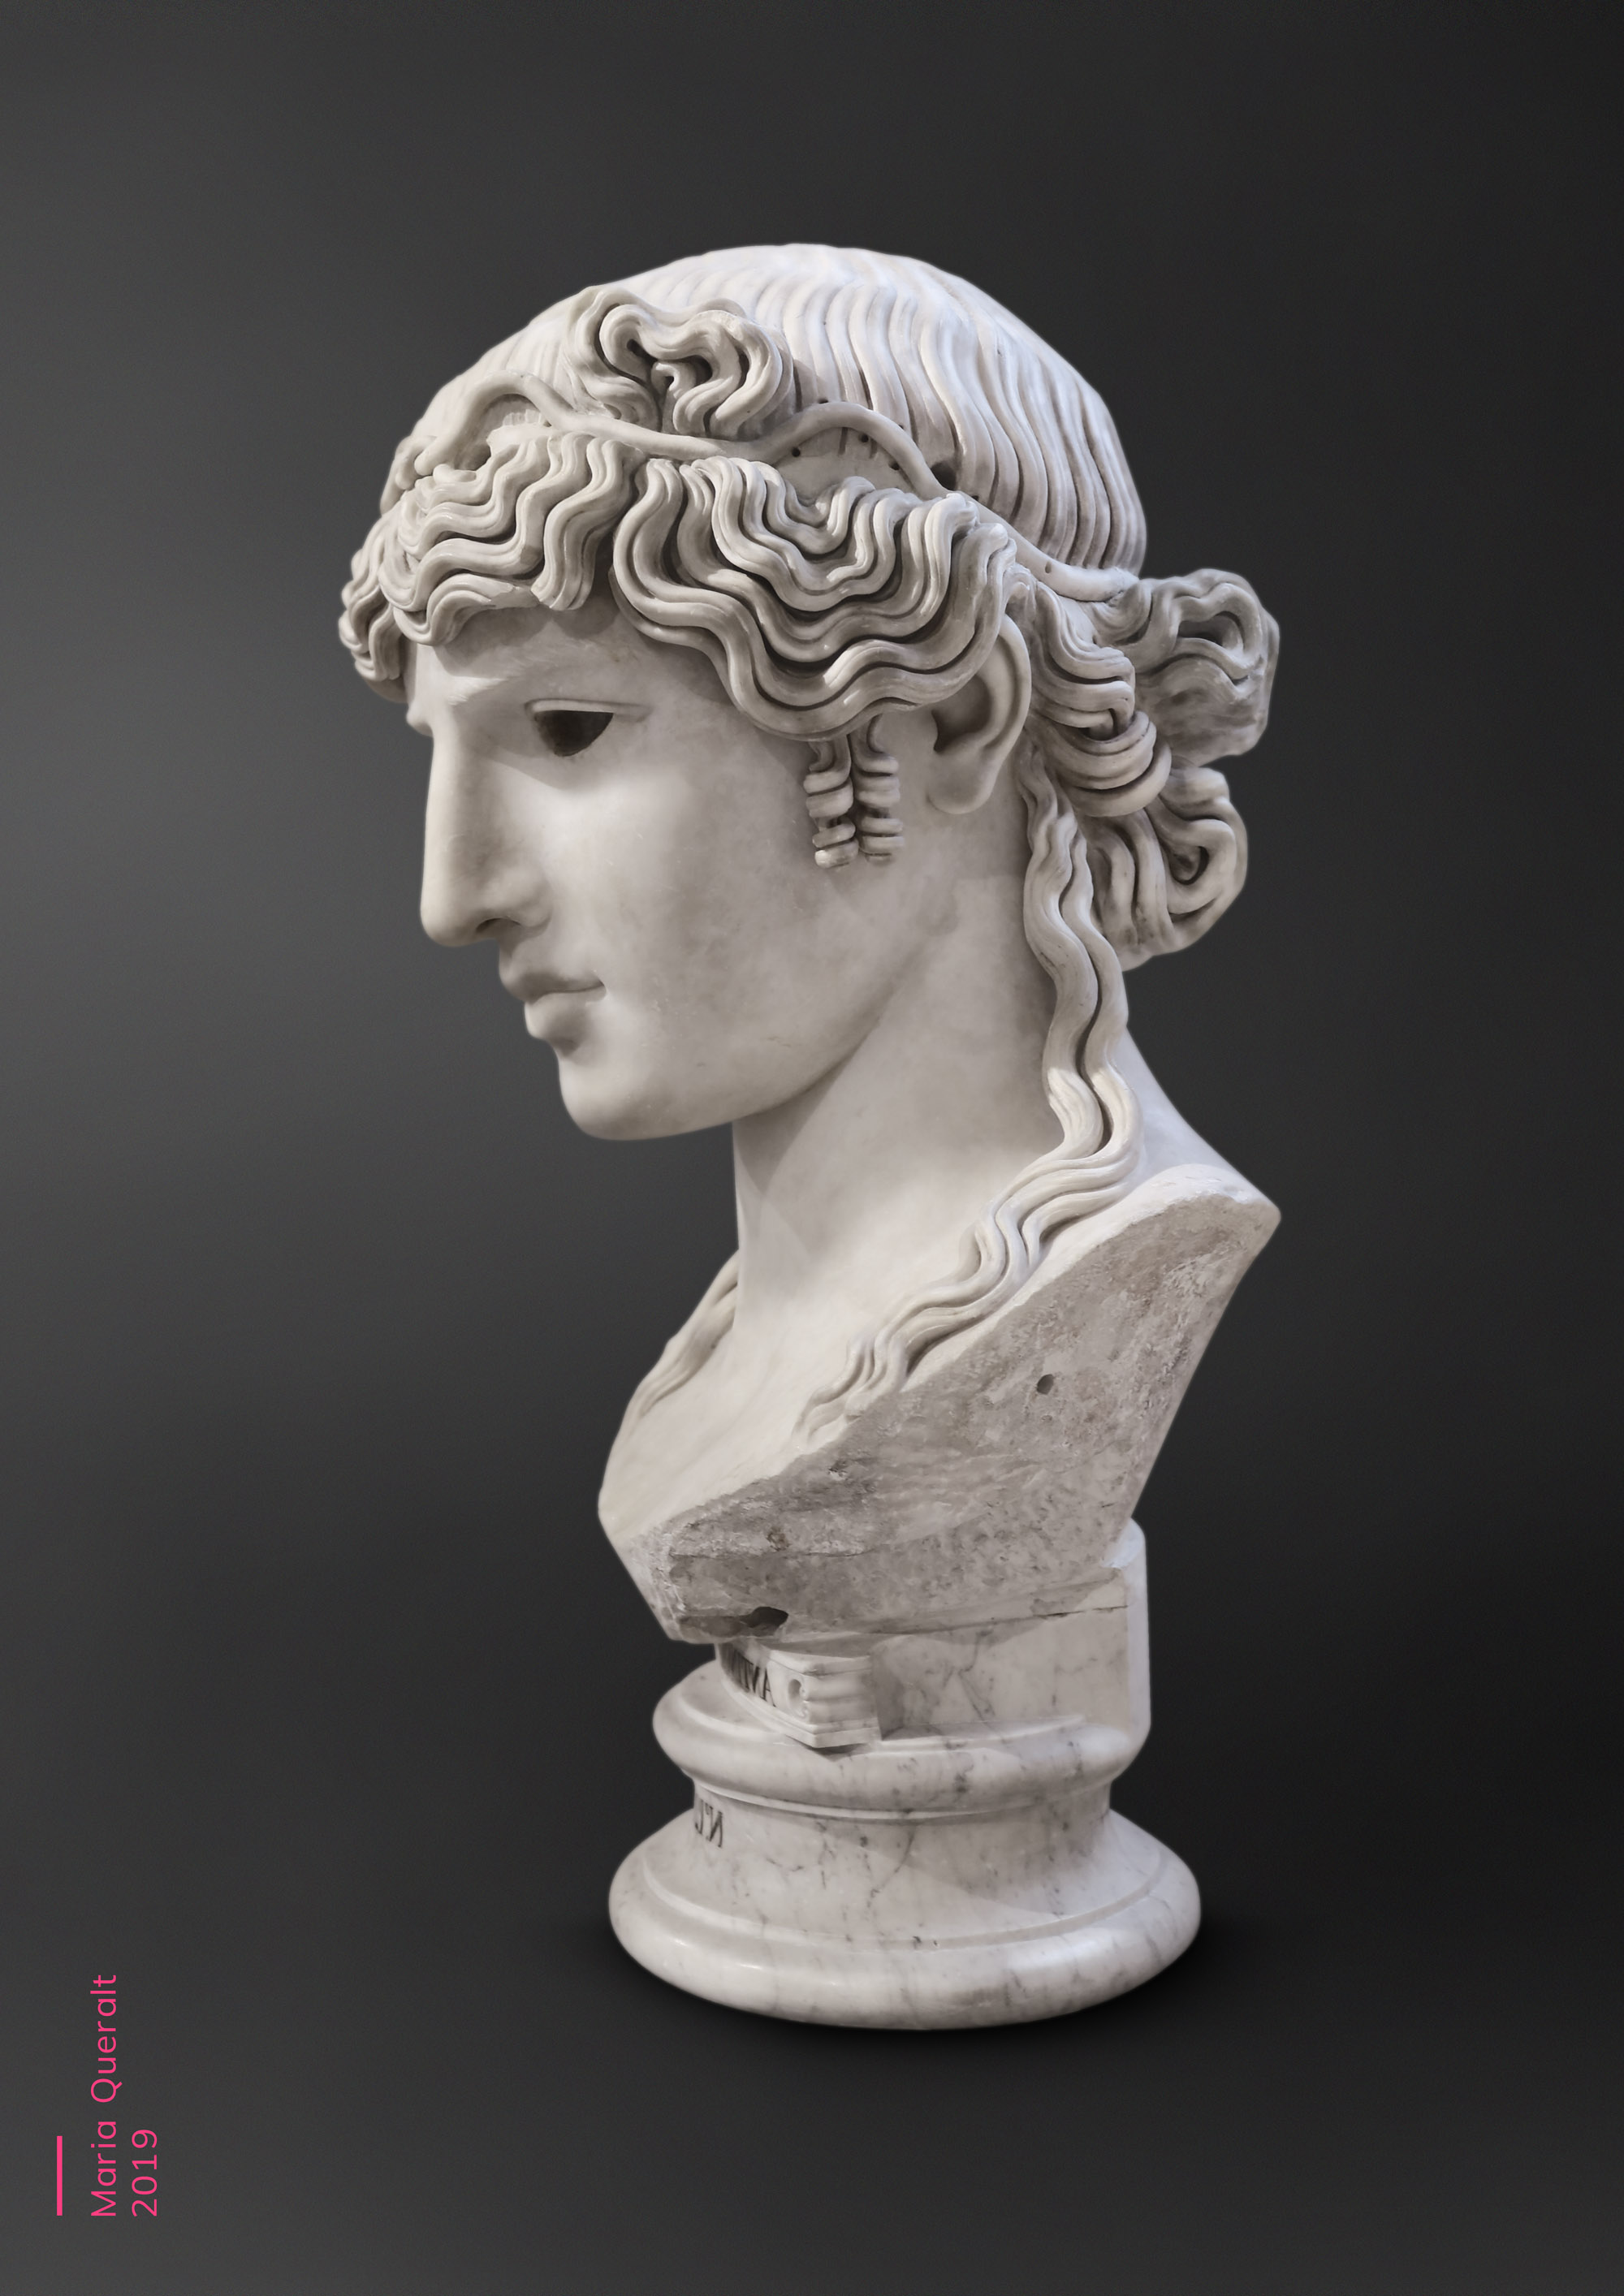 Sculpture of Antinous Mondragone, lover of Roman Emperor Hadrian, Louvre Museum, Paris. Part of the Ancient Influencers Photography series by Maria Queralt. Photography and retouche by Maria Queralt